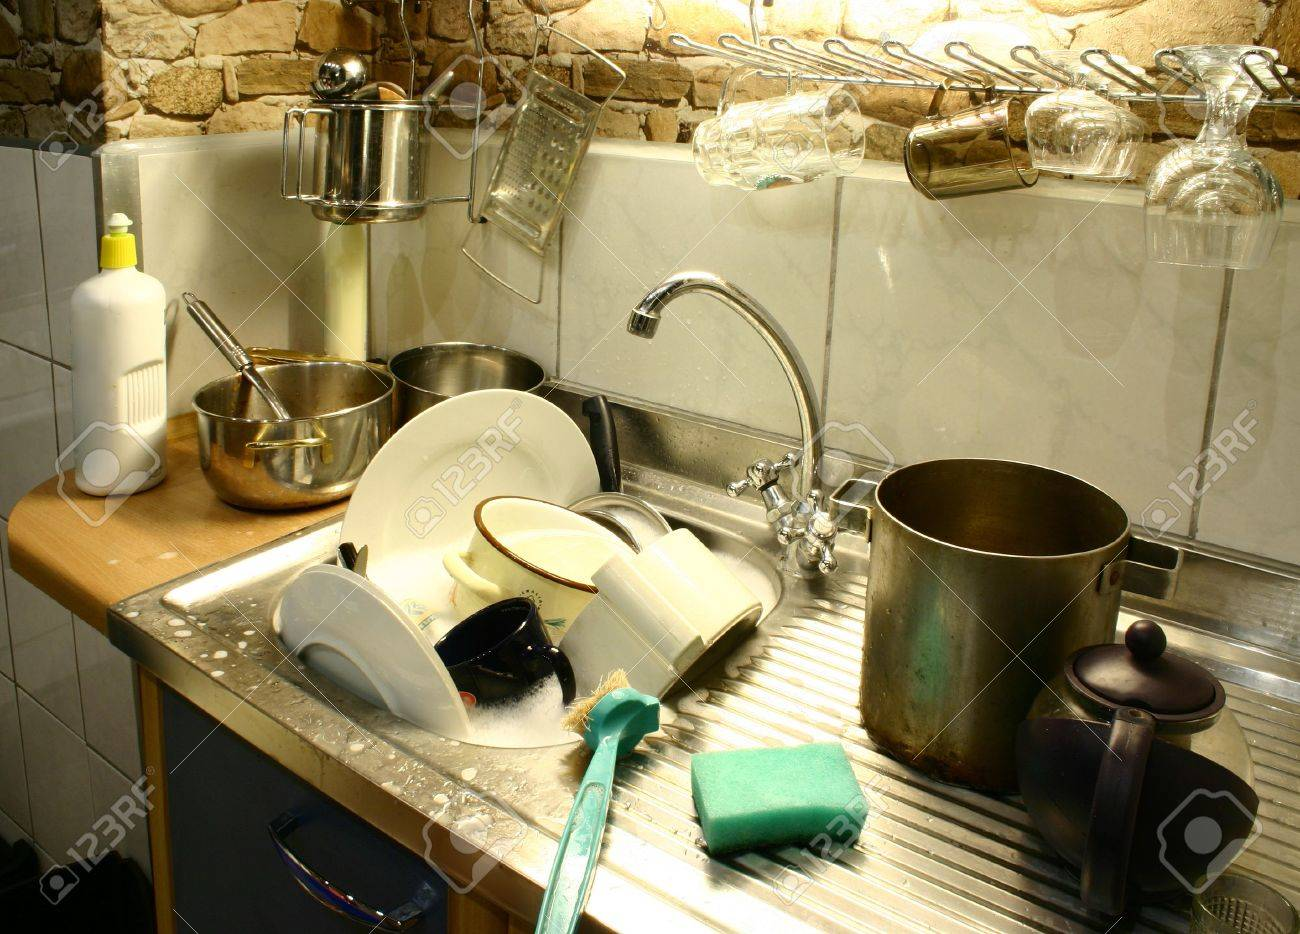 Kitchen Sink With Dishes lots of dirty dishes in small kitchen's sink stock photo, picture